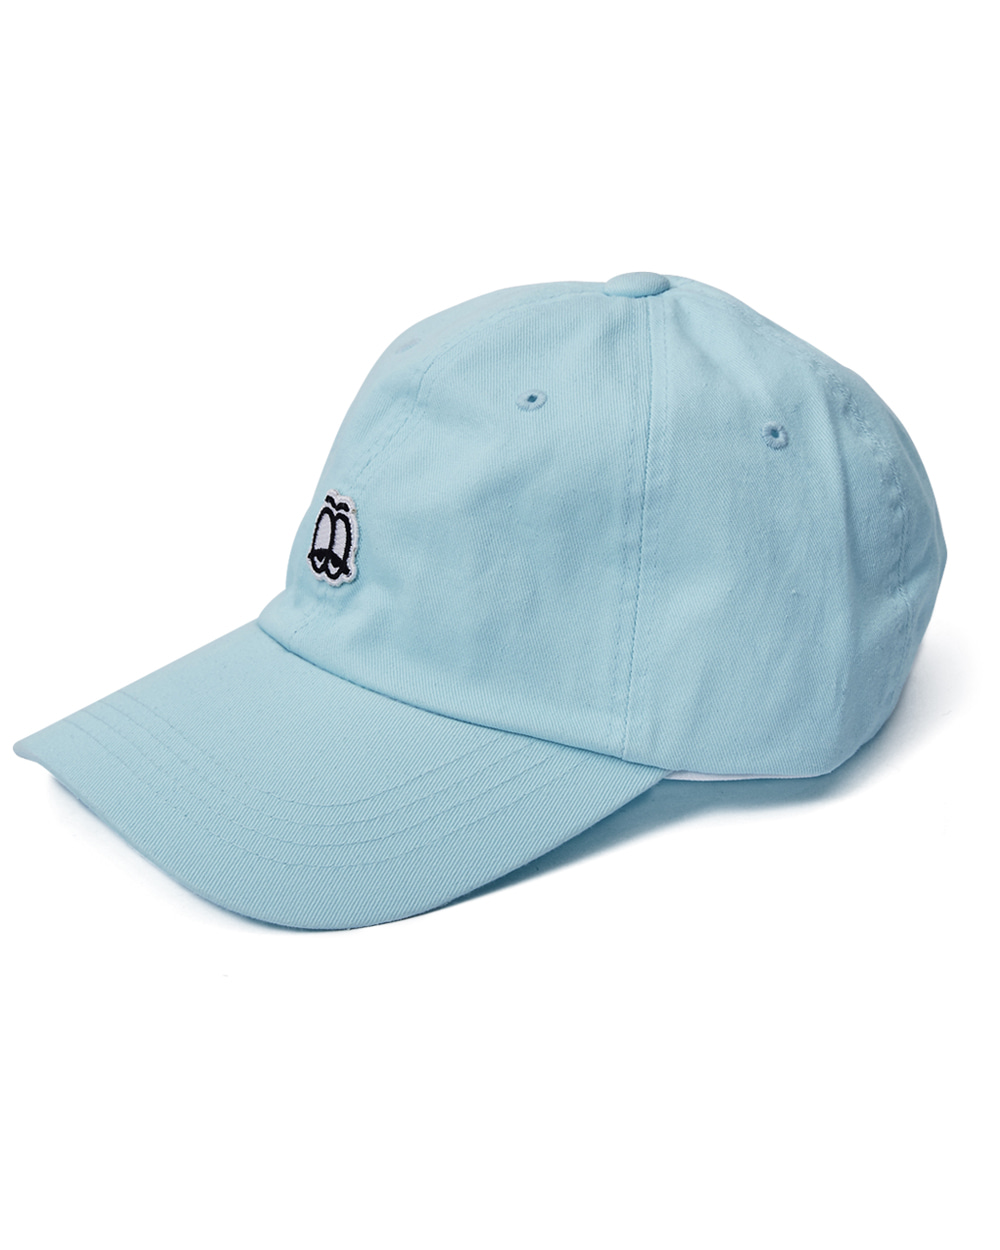 SLEEPY HEAD BALLCAP | MINT